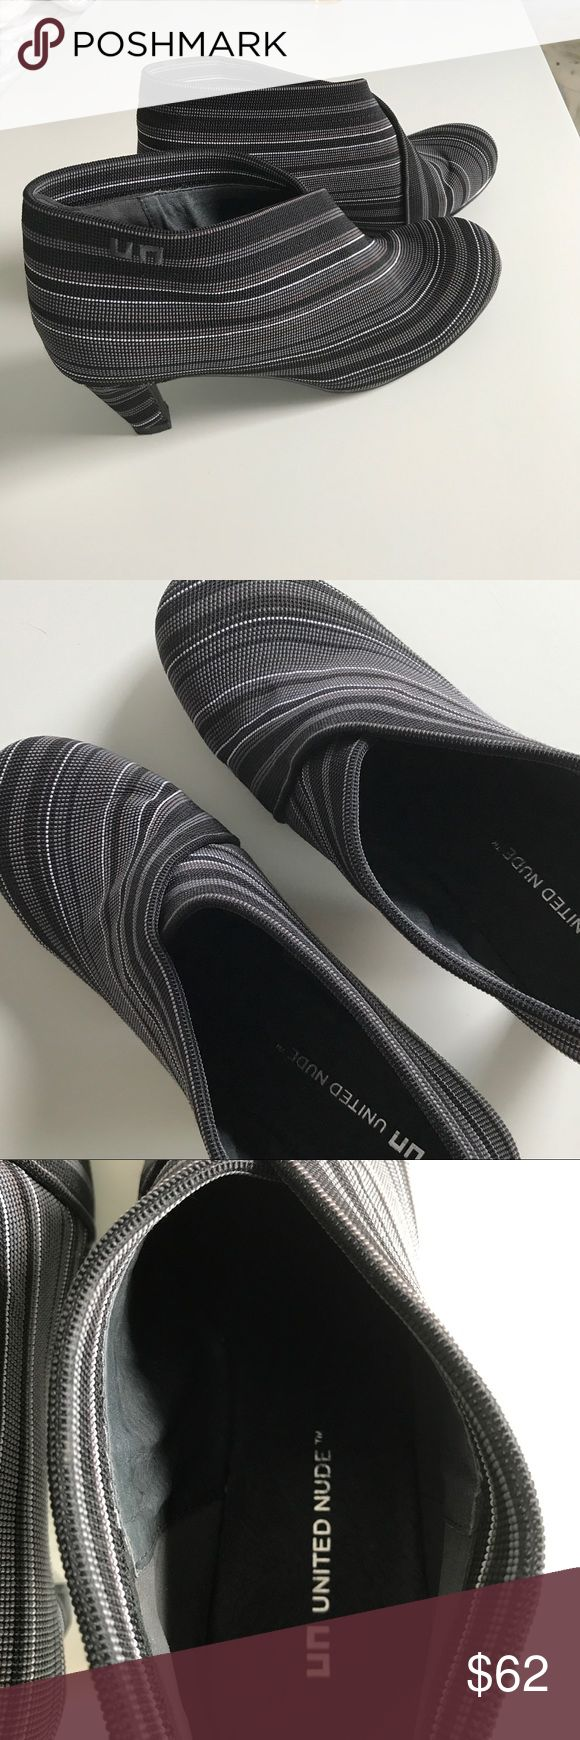 """UNITED NUDE striped ankle bootie Stunning striped ankle bootie by United Nude. Barely worn. 2"""" heel United Nude Shoes Ankle Boots & Booties"""